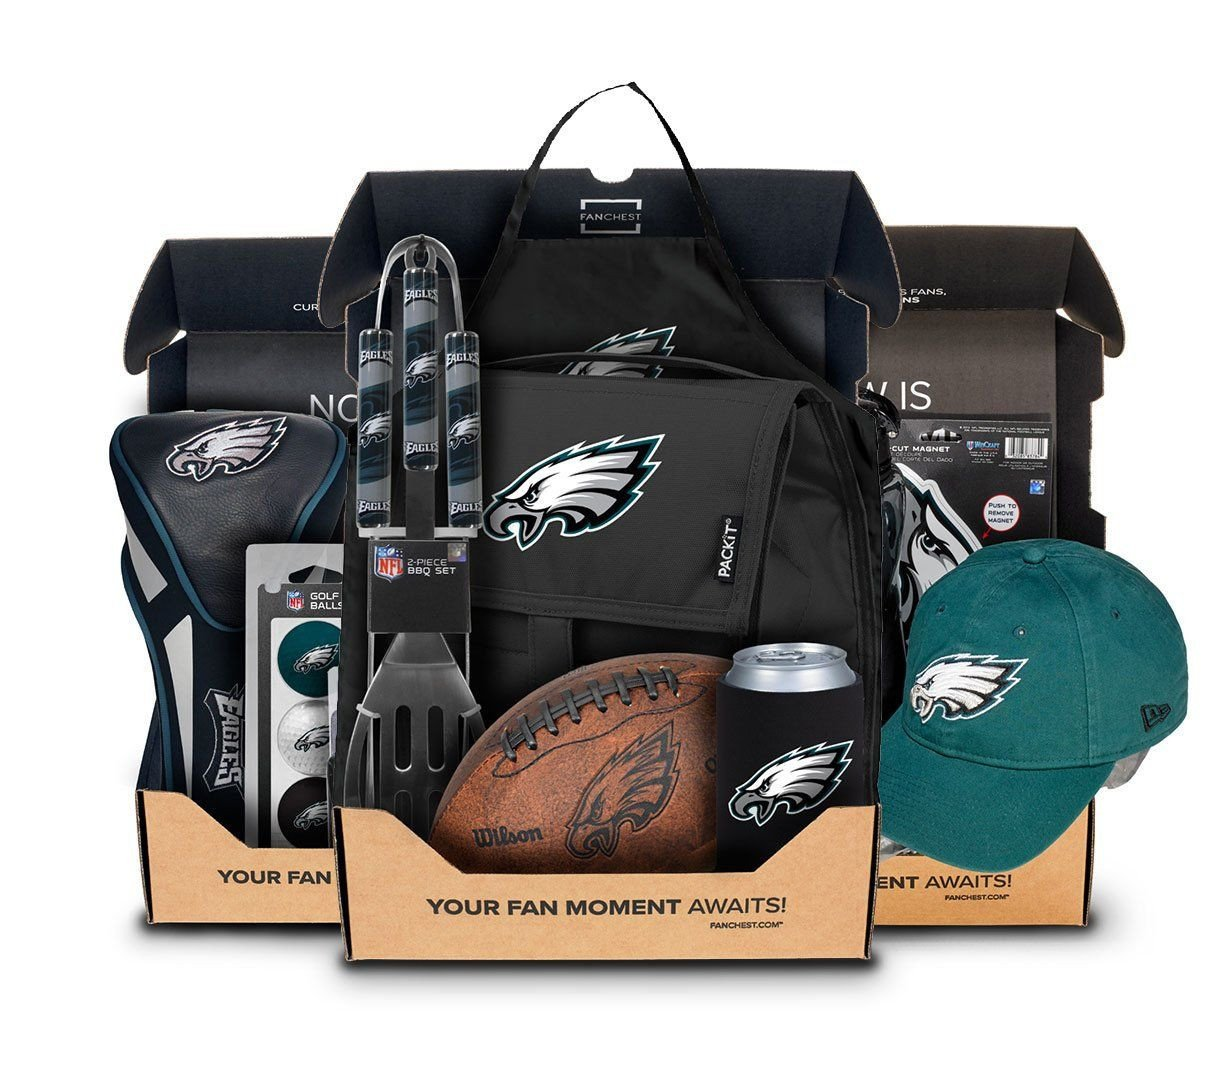 Oakland Raiders Bedroom Set Luxury Eagles themed Gift Box